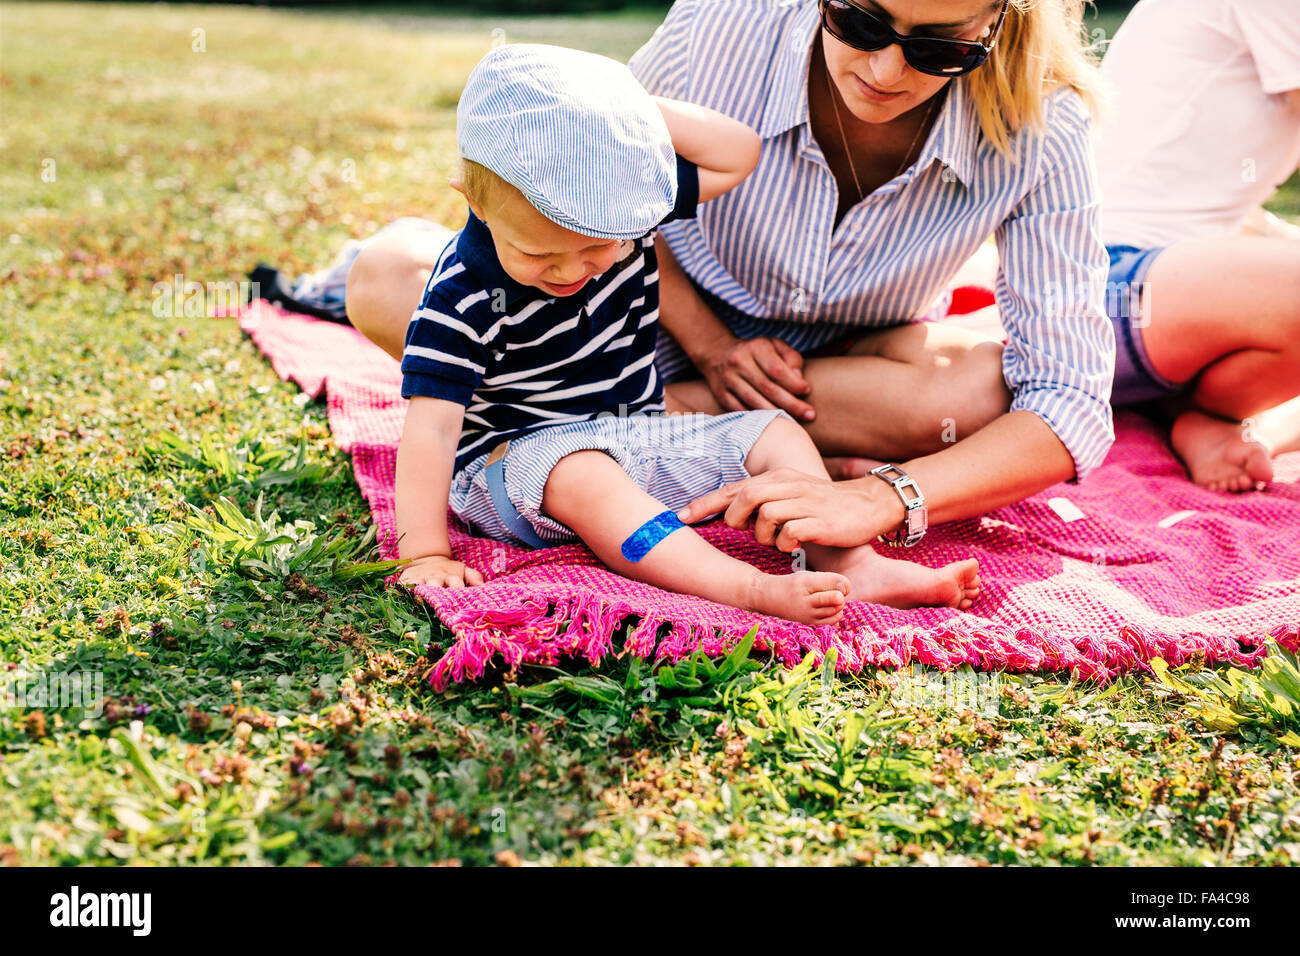 Mother putting bandage on son's leg during picnic in park - Stock Image